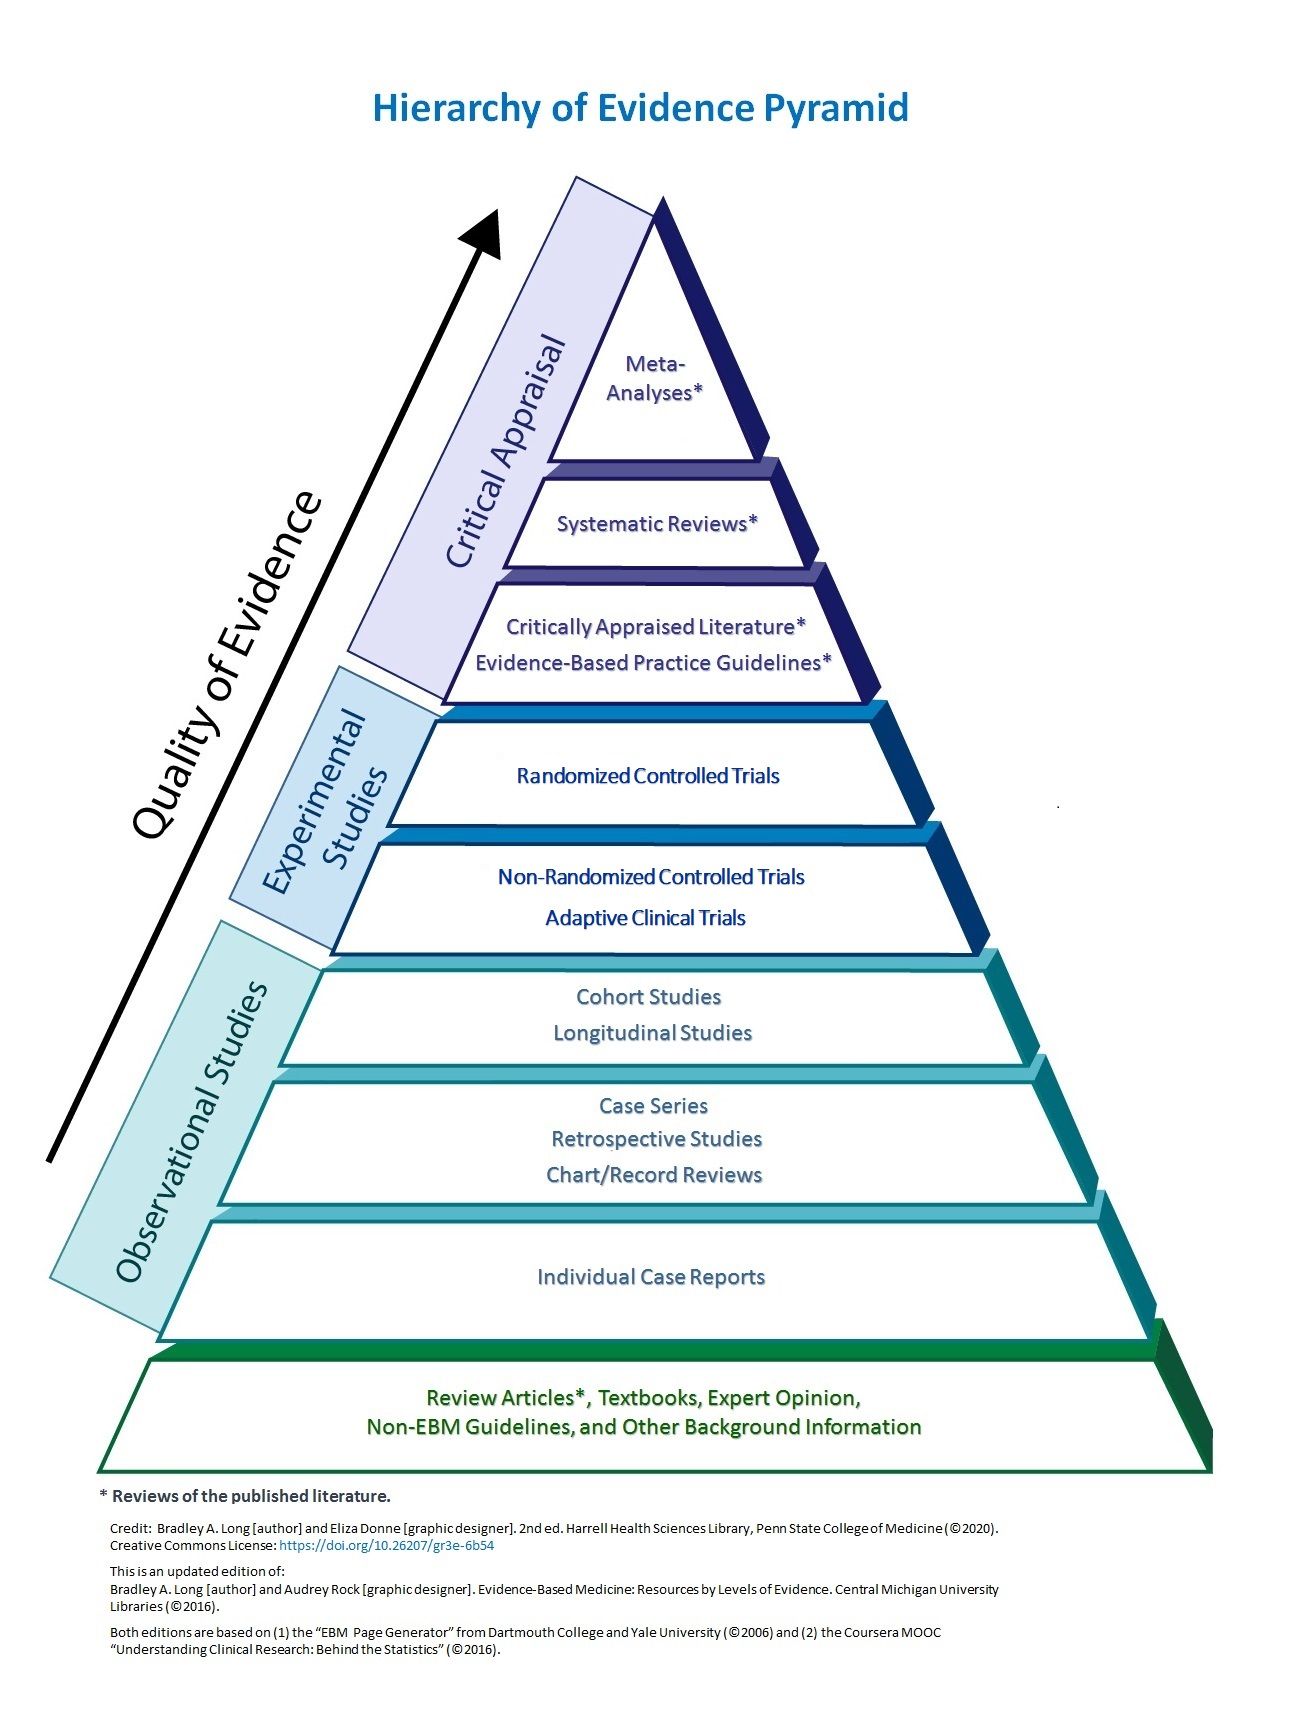 Hierarchy of Evidence Pyramid graphic